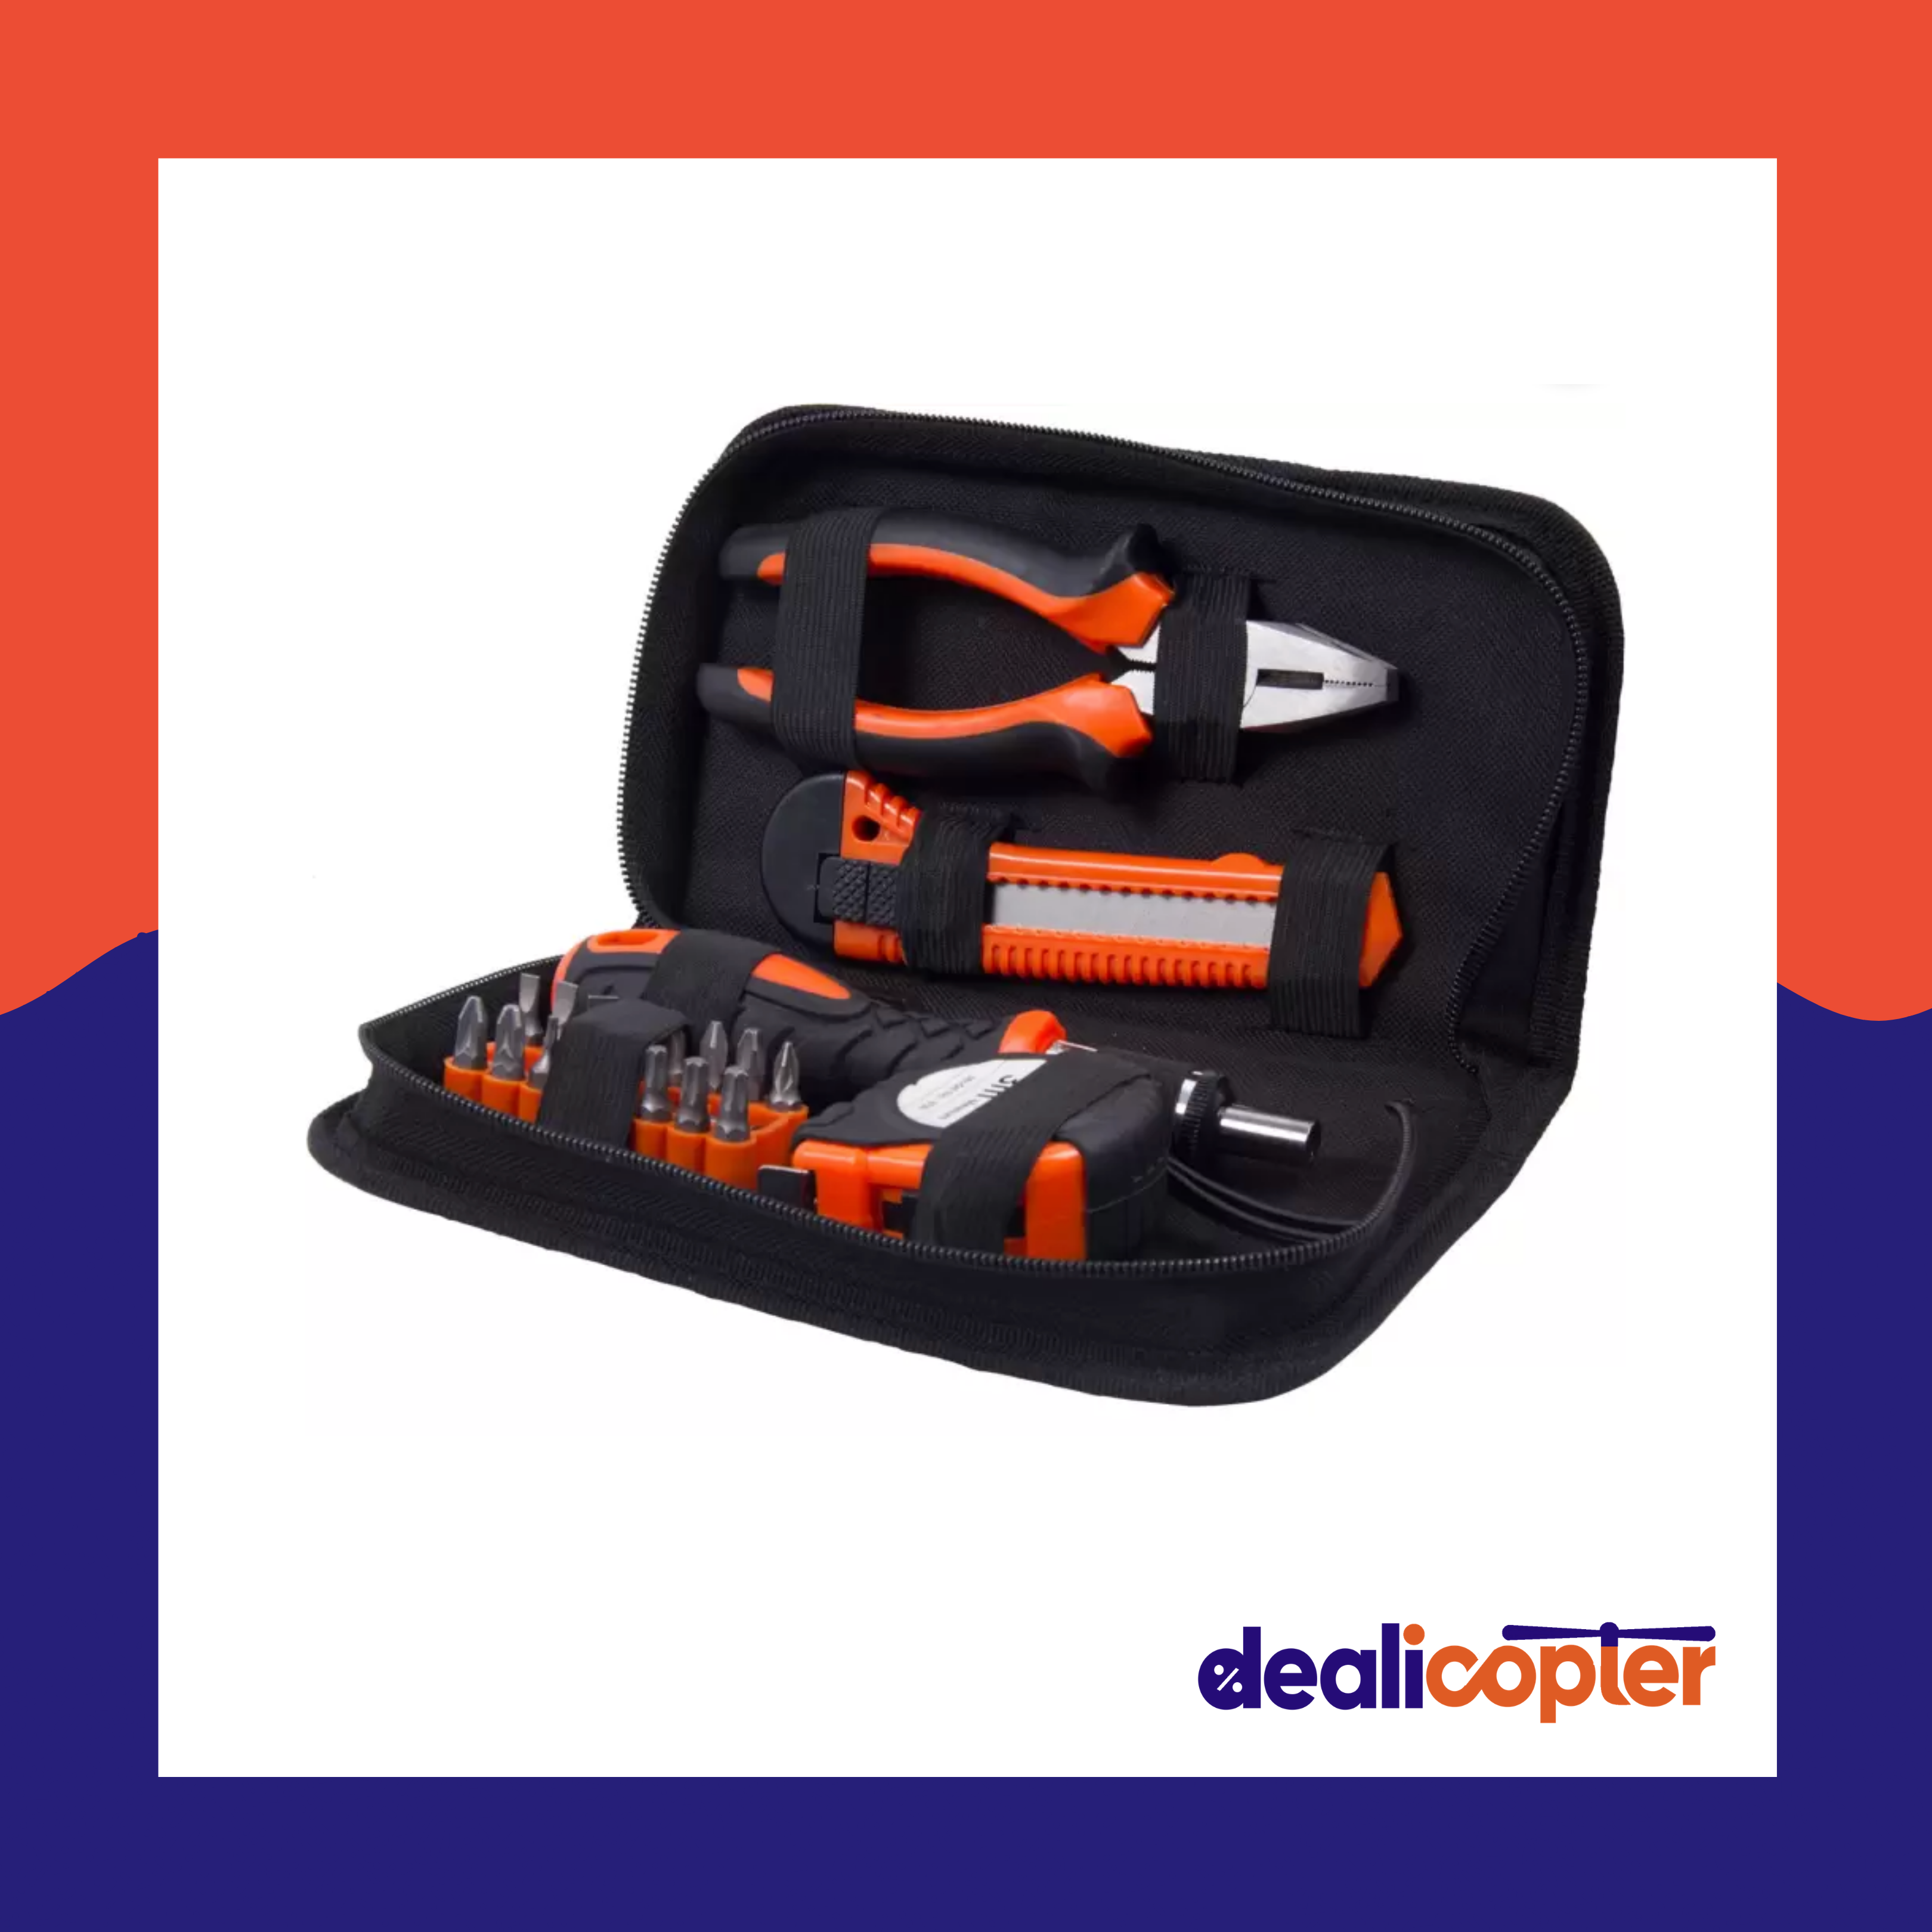 ALL-IN-ONE 21PCS hand tool kit